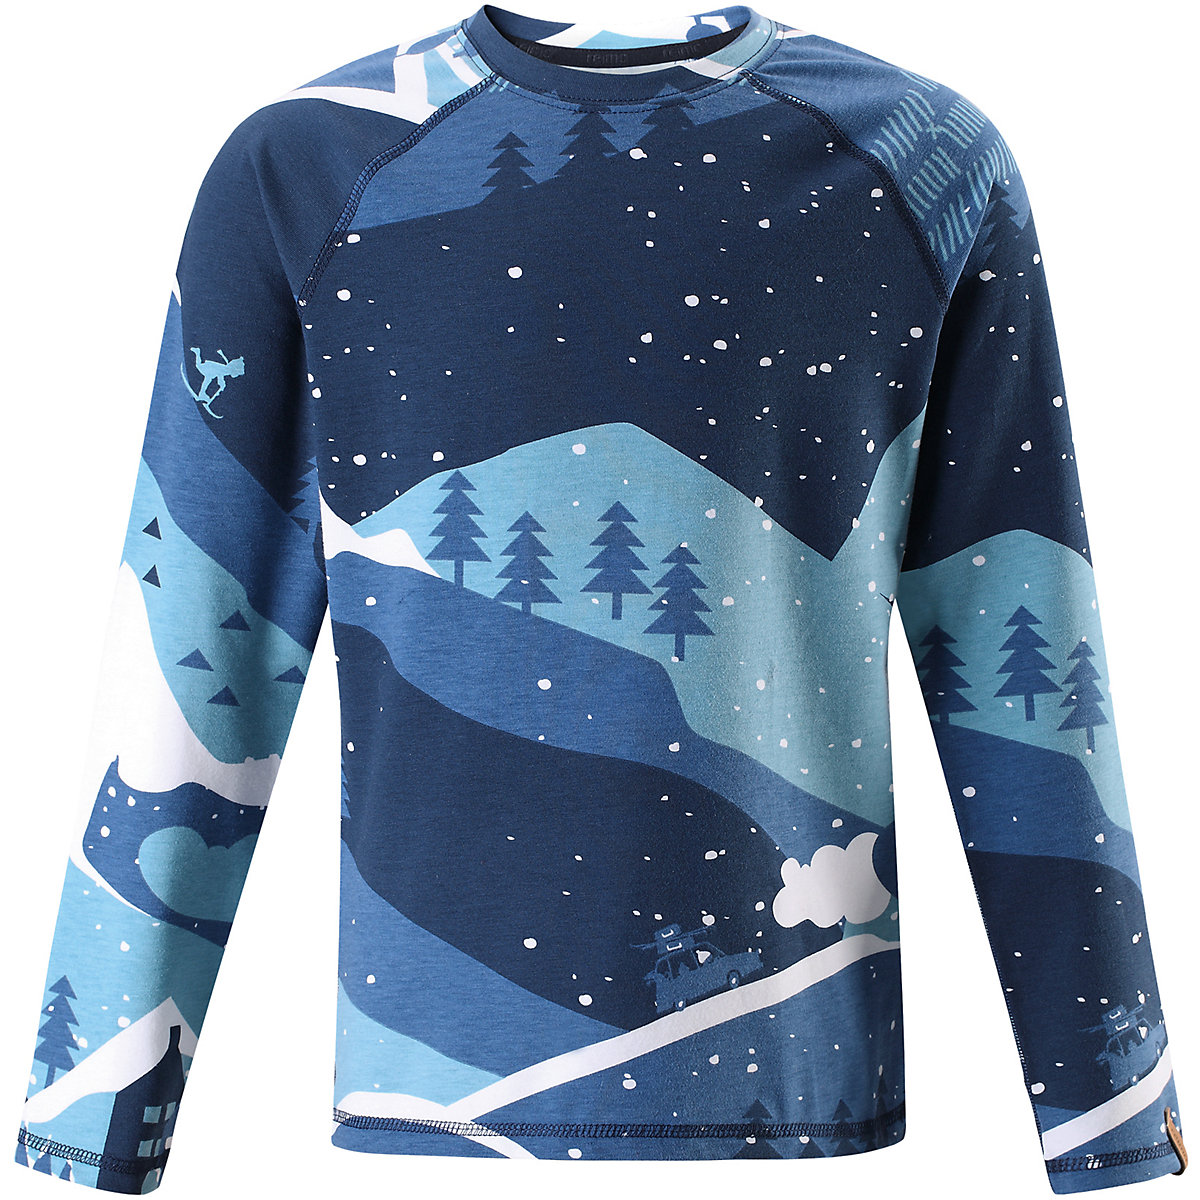 Reima Sweaters 8689550 winter clothes   for boys and girls cotton children autumn and winter warm clothes boys and girls thick cashmere sweaters